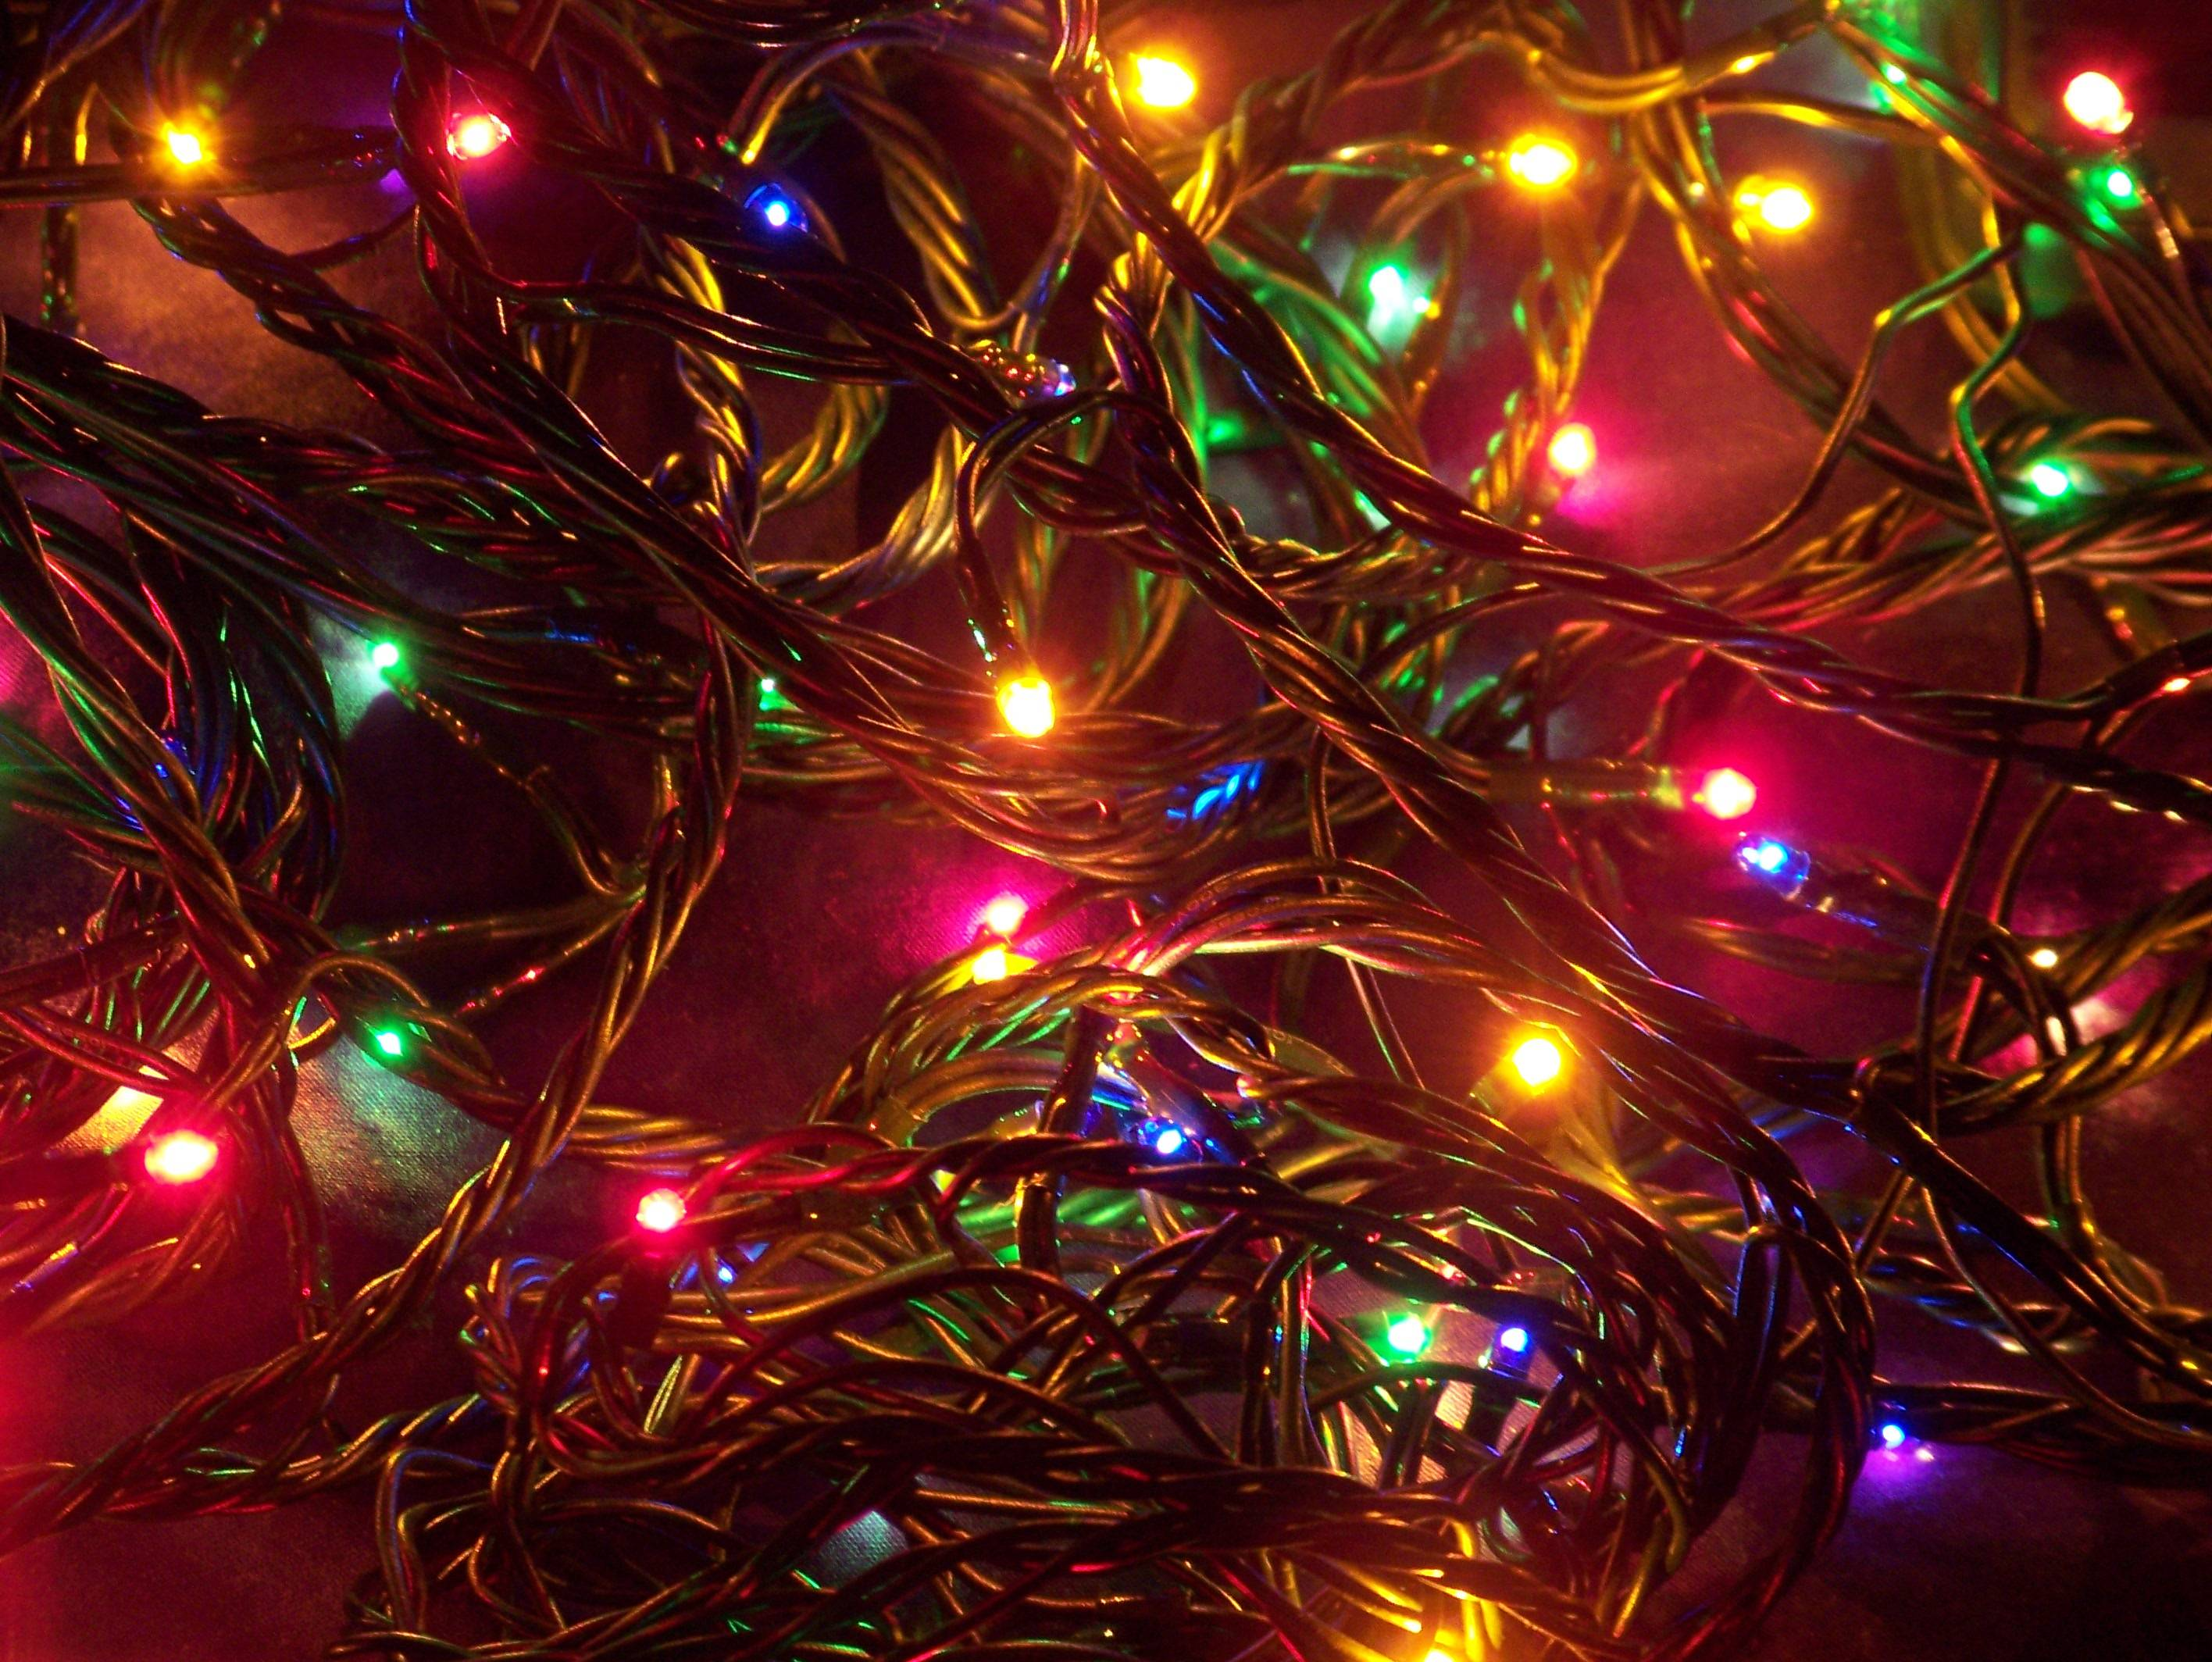 Xmas lights wallpaper | afunfacts.